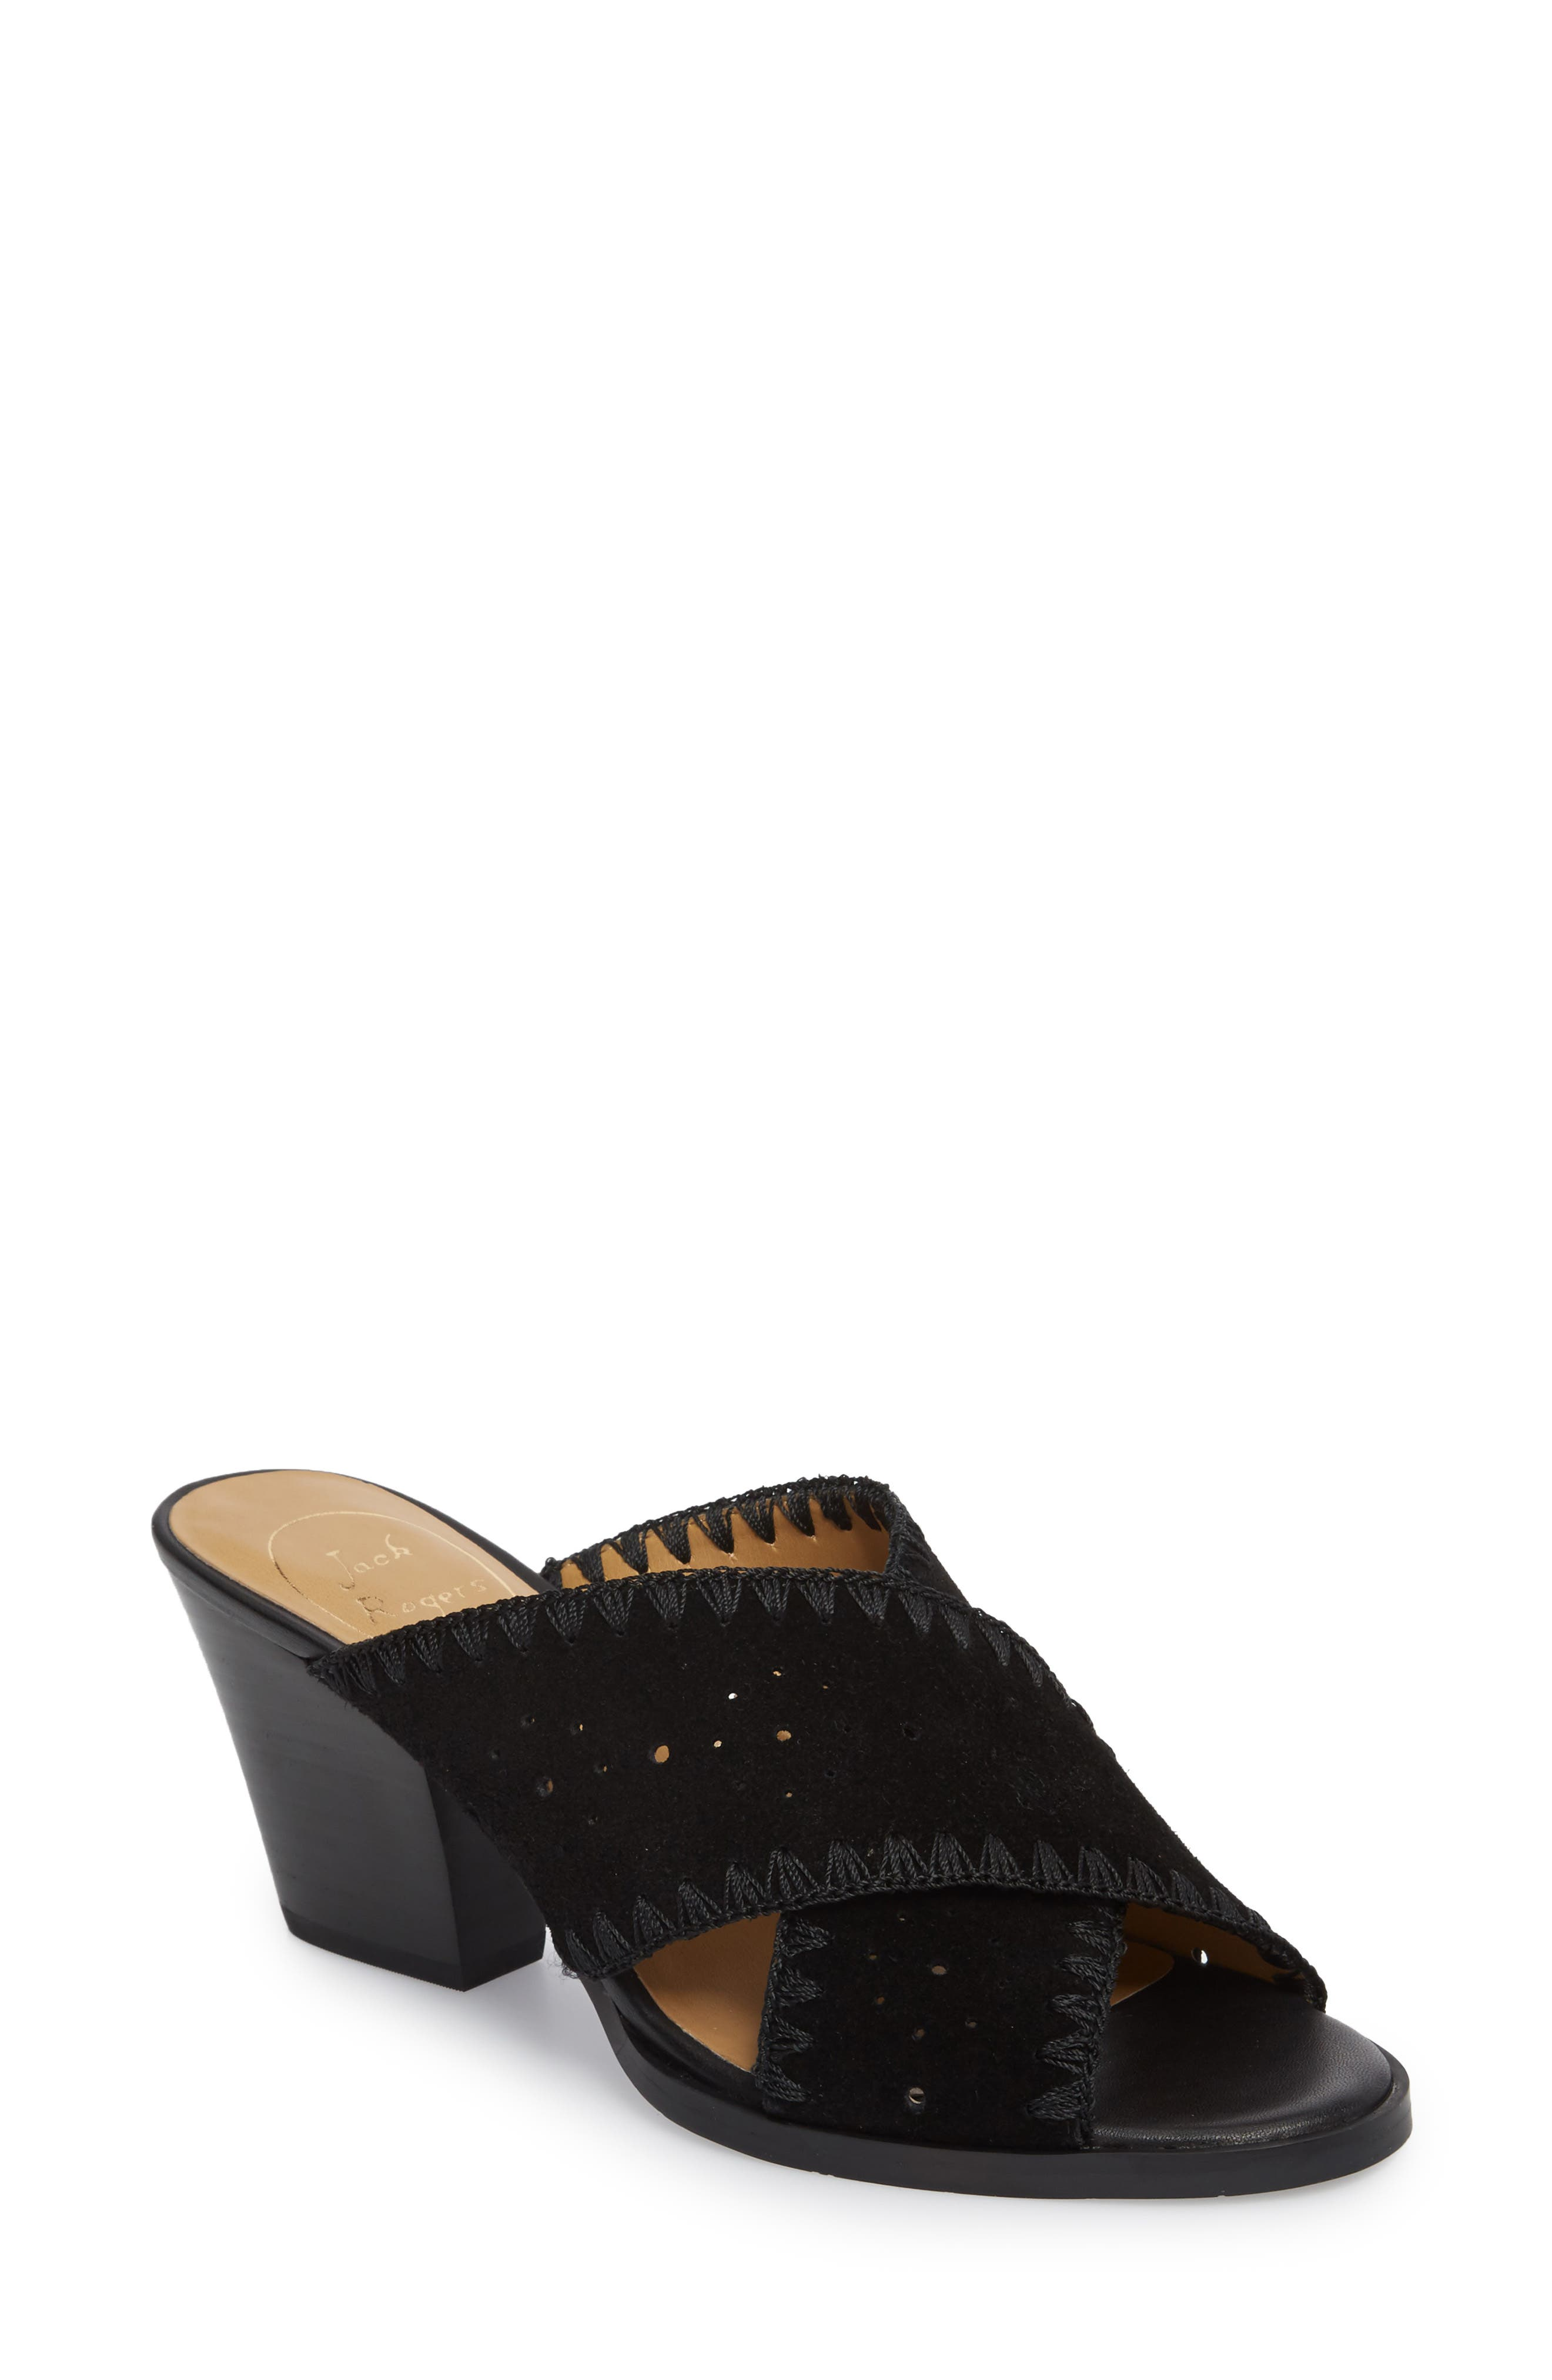 Blakely Sandal,                             Main thumbnail 1, color,                             Black Suede